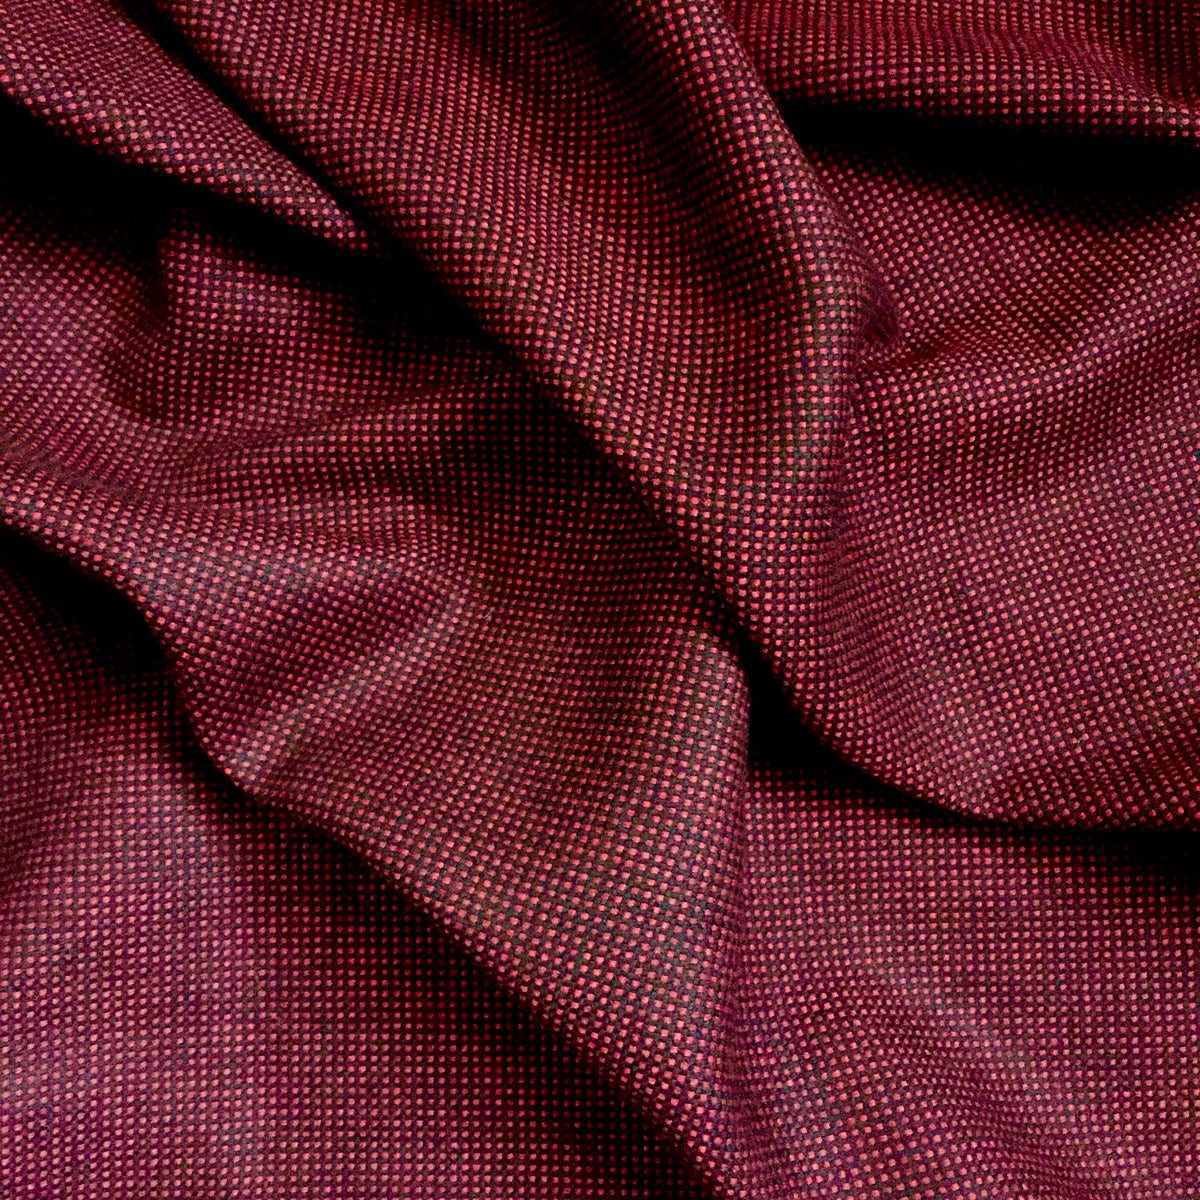 Fabric by the yard Sewing Black Red Micro-check Woven Polyester